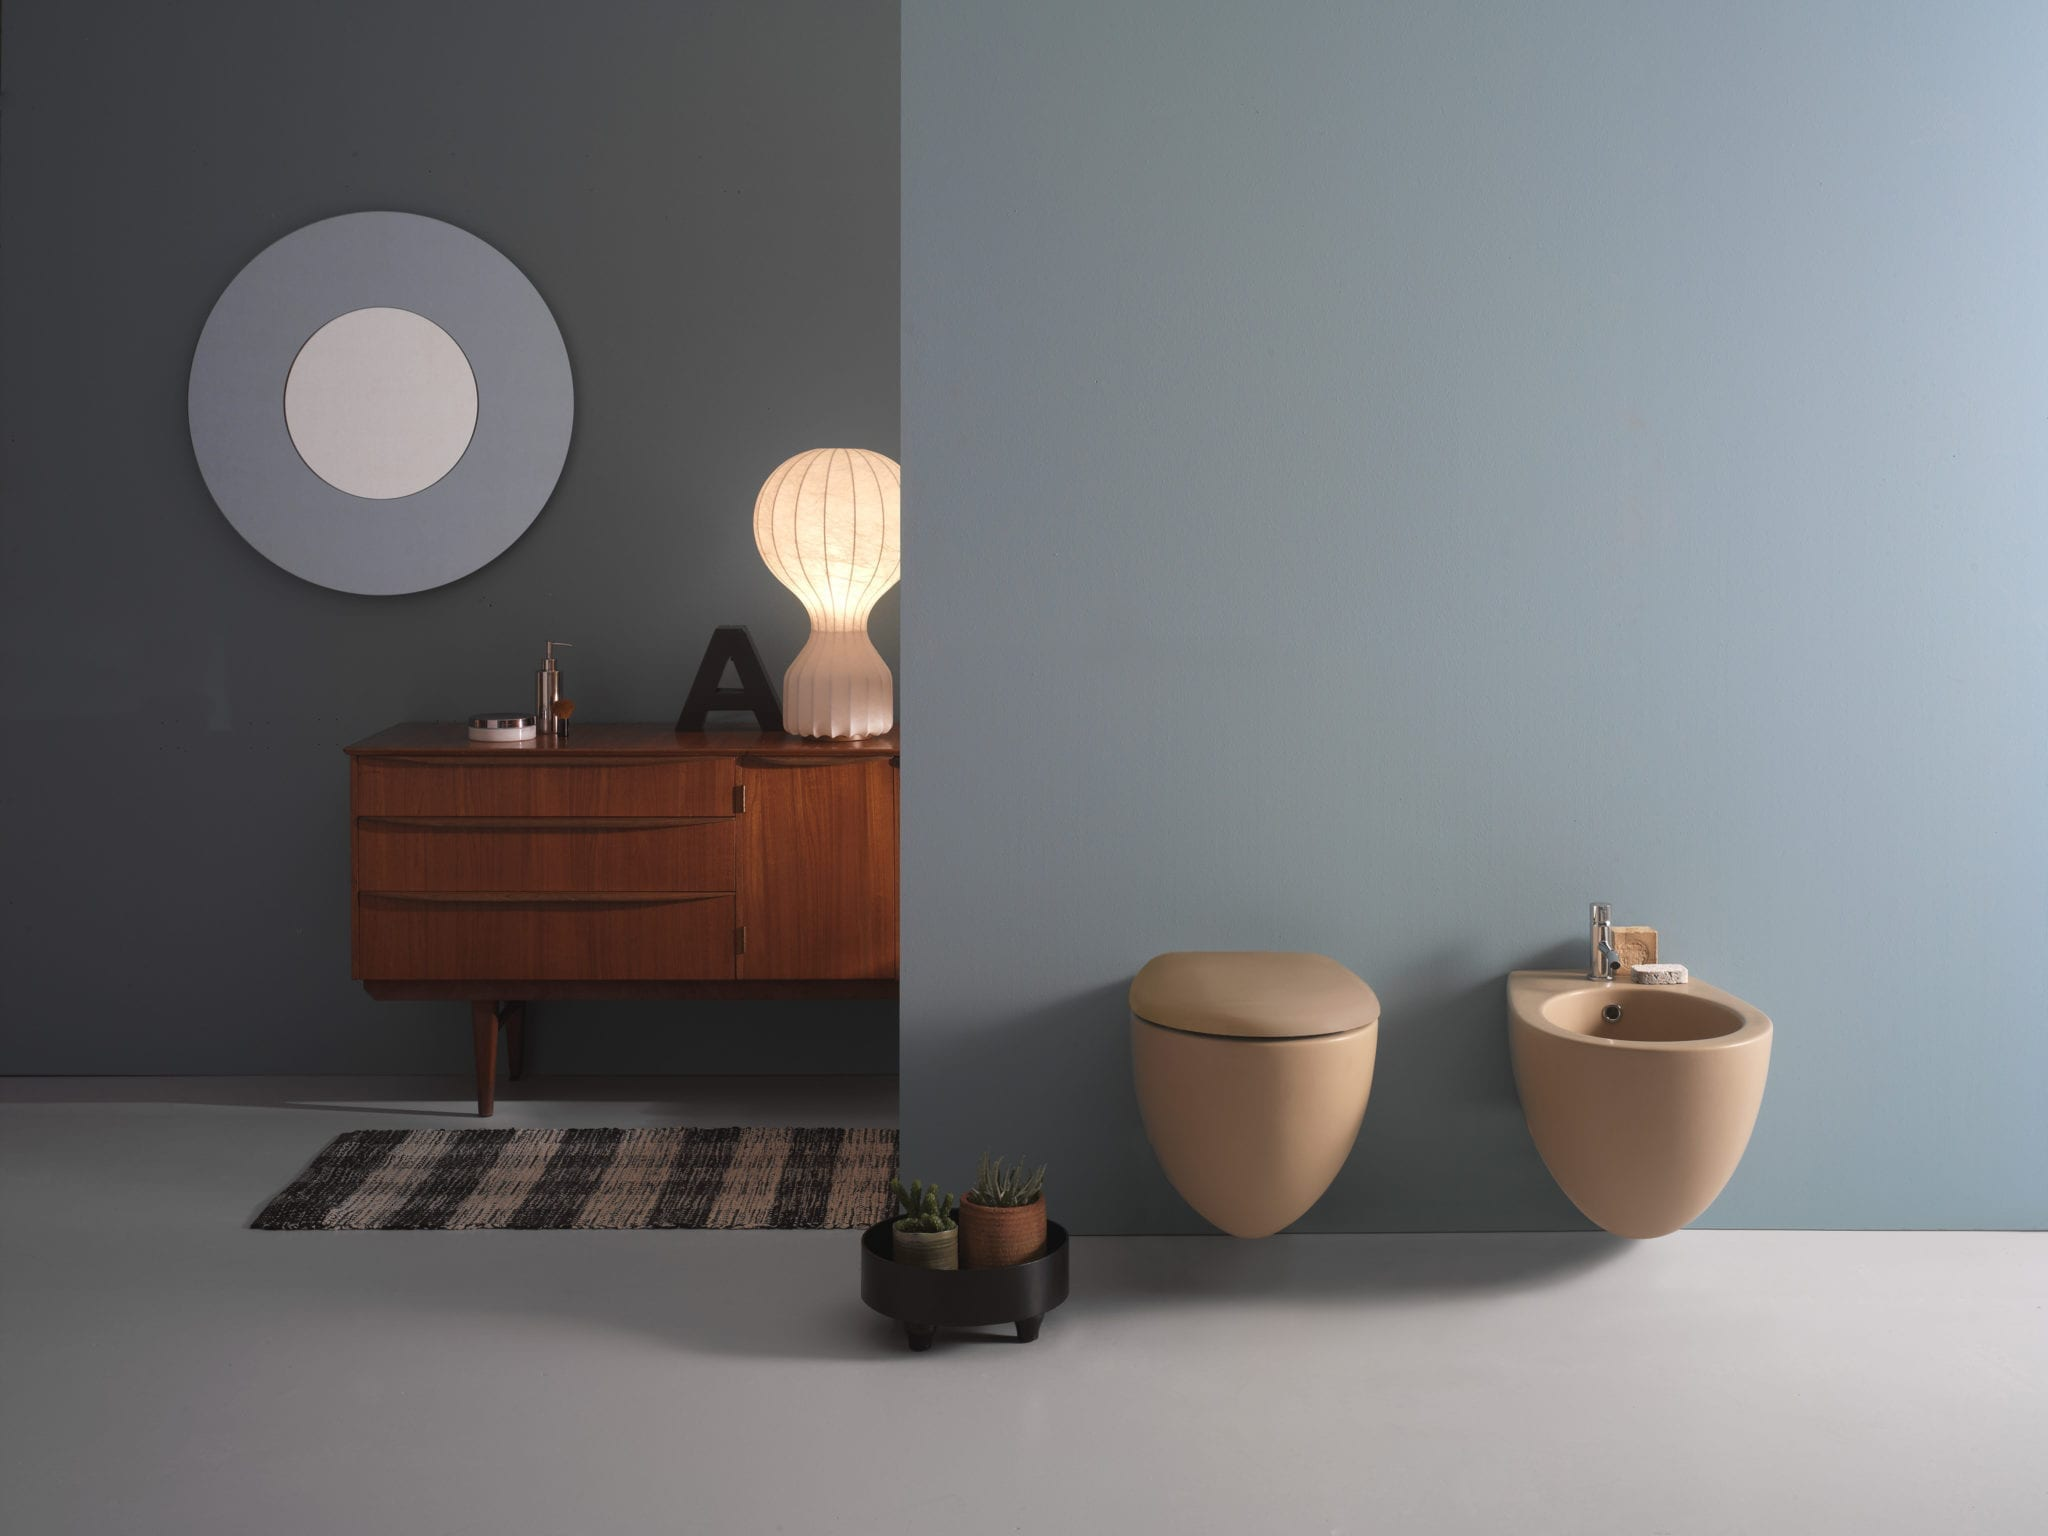 Globo bagno colore catalogue 2015 art direction 02